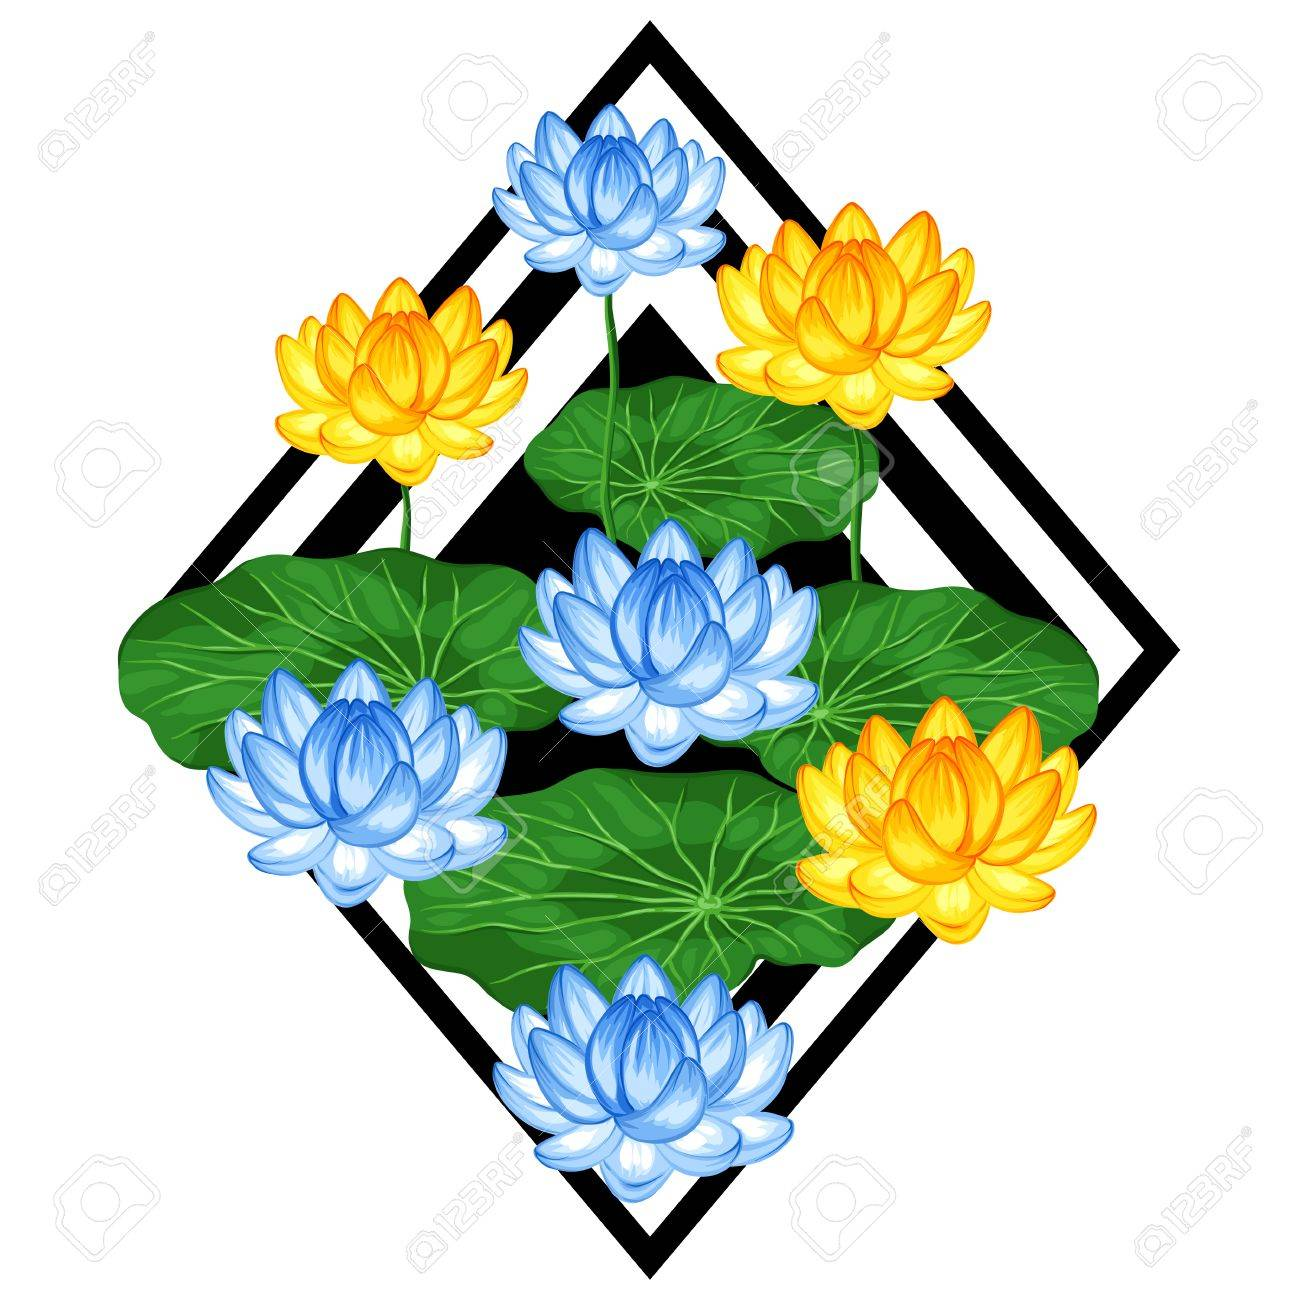 Natural background with lotus flowers and leaves image for design natural background with lotus flowers and leaves image for design on t shirts mightylinksfo